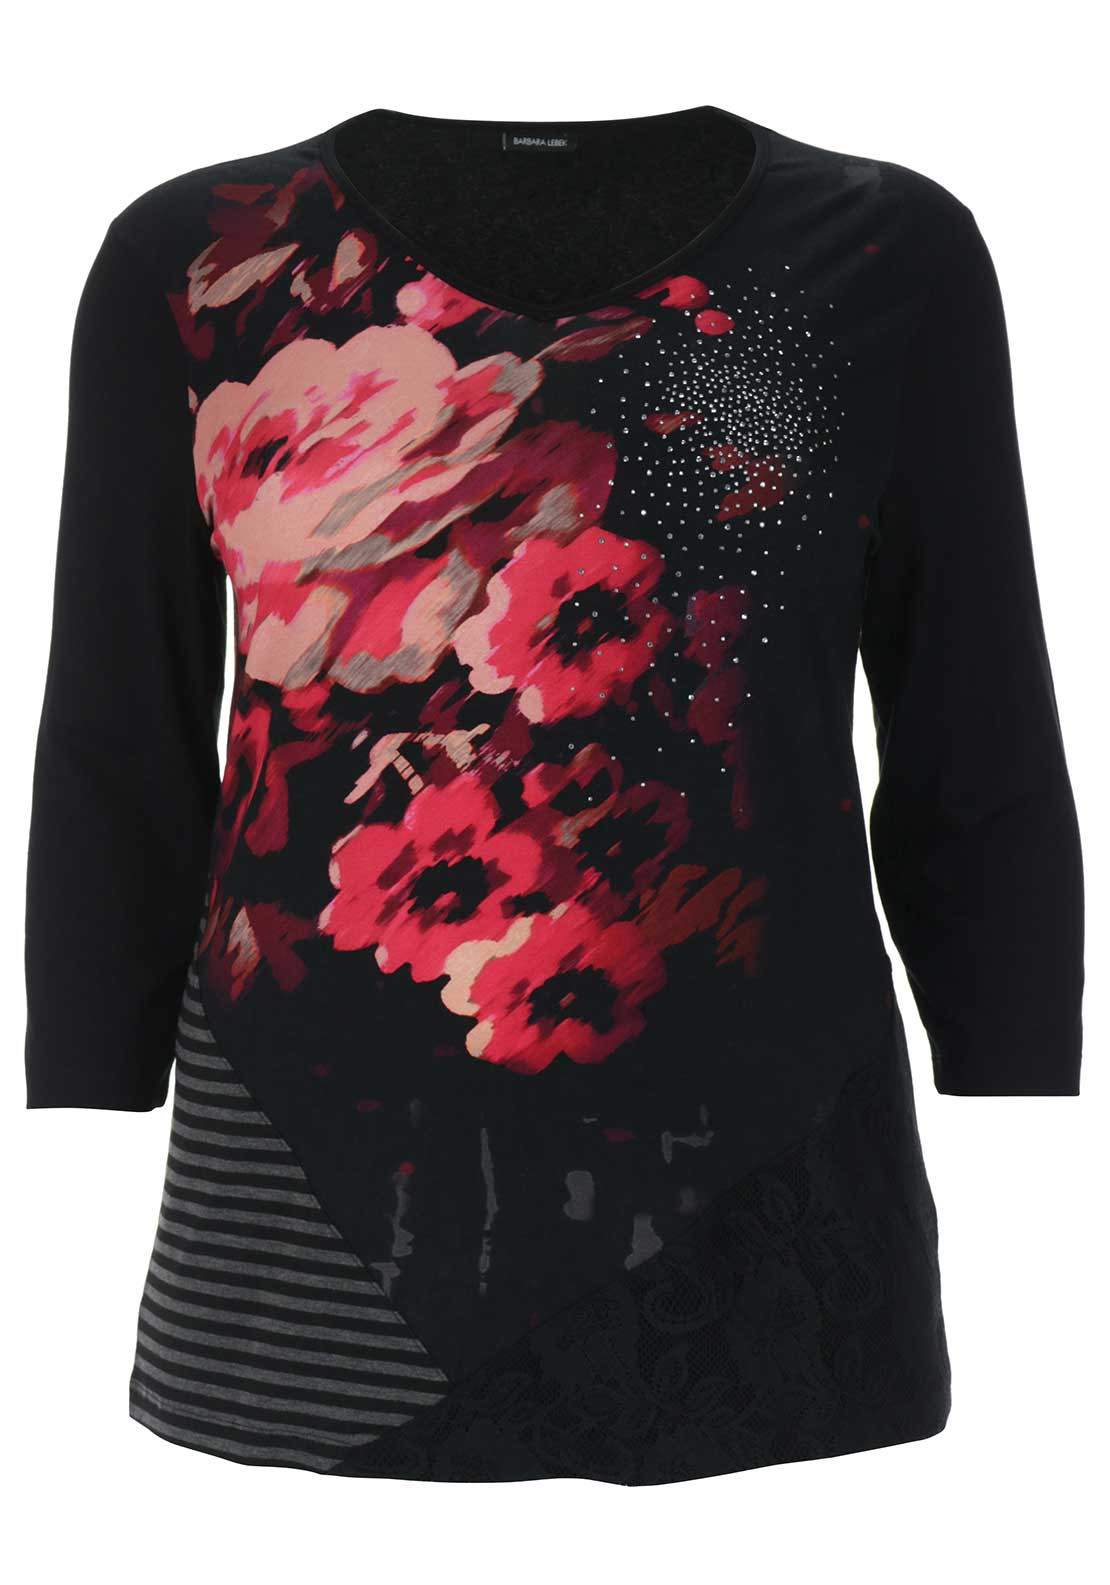 Barbara Lebek Floral Print Top, Black Multi